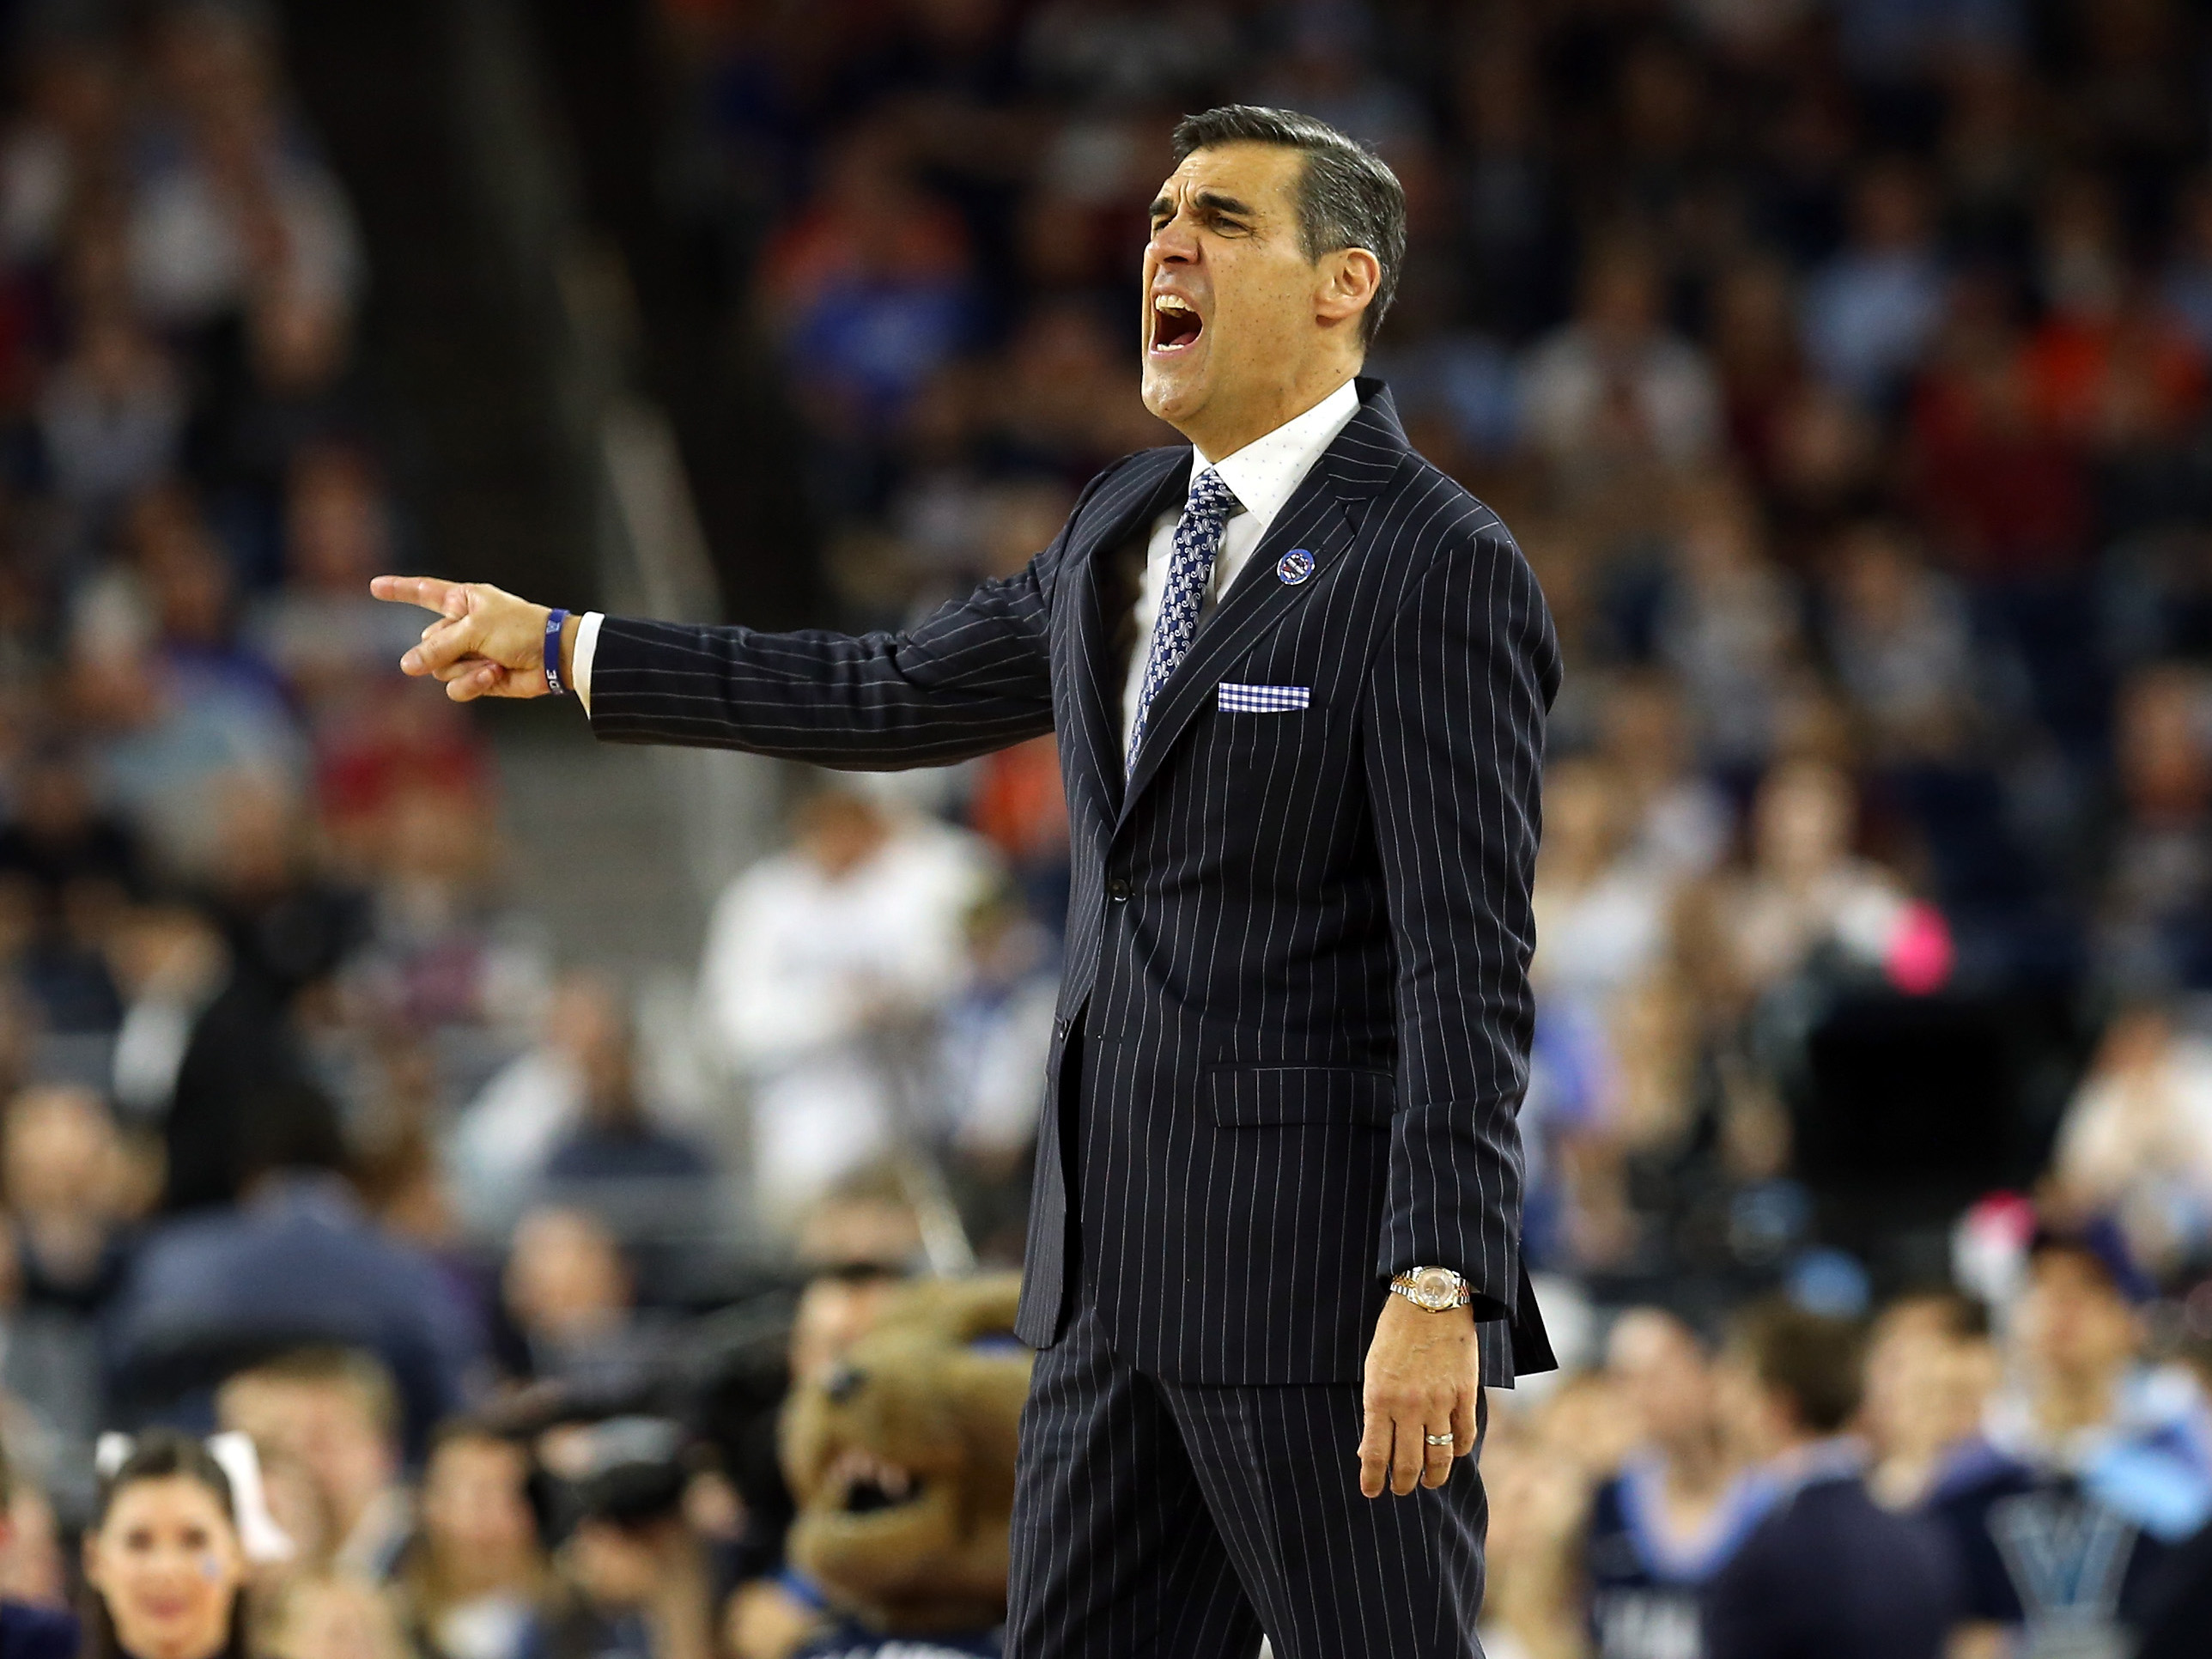 NCAA Men's Final Four Semifinal – Villanova v Oklahoma